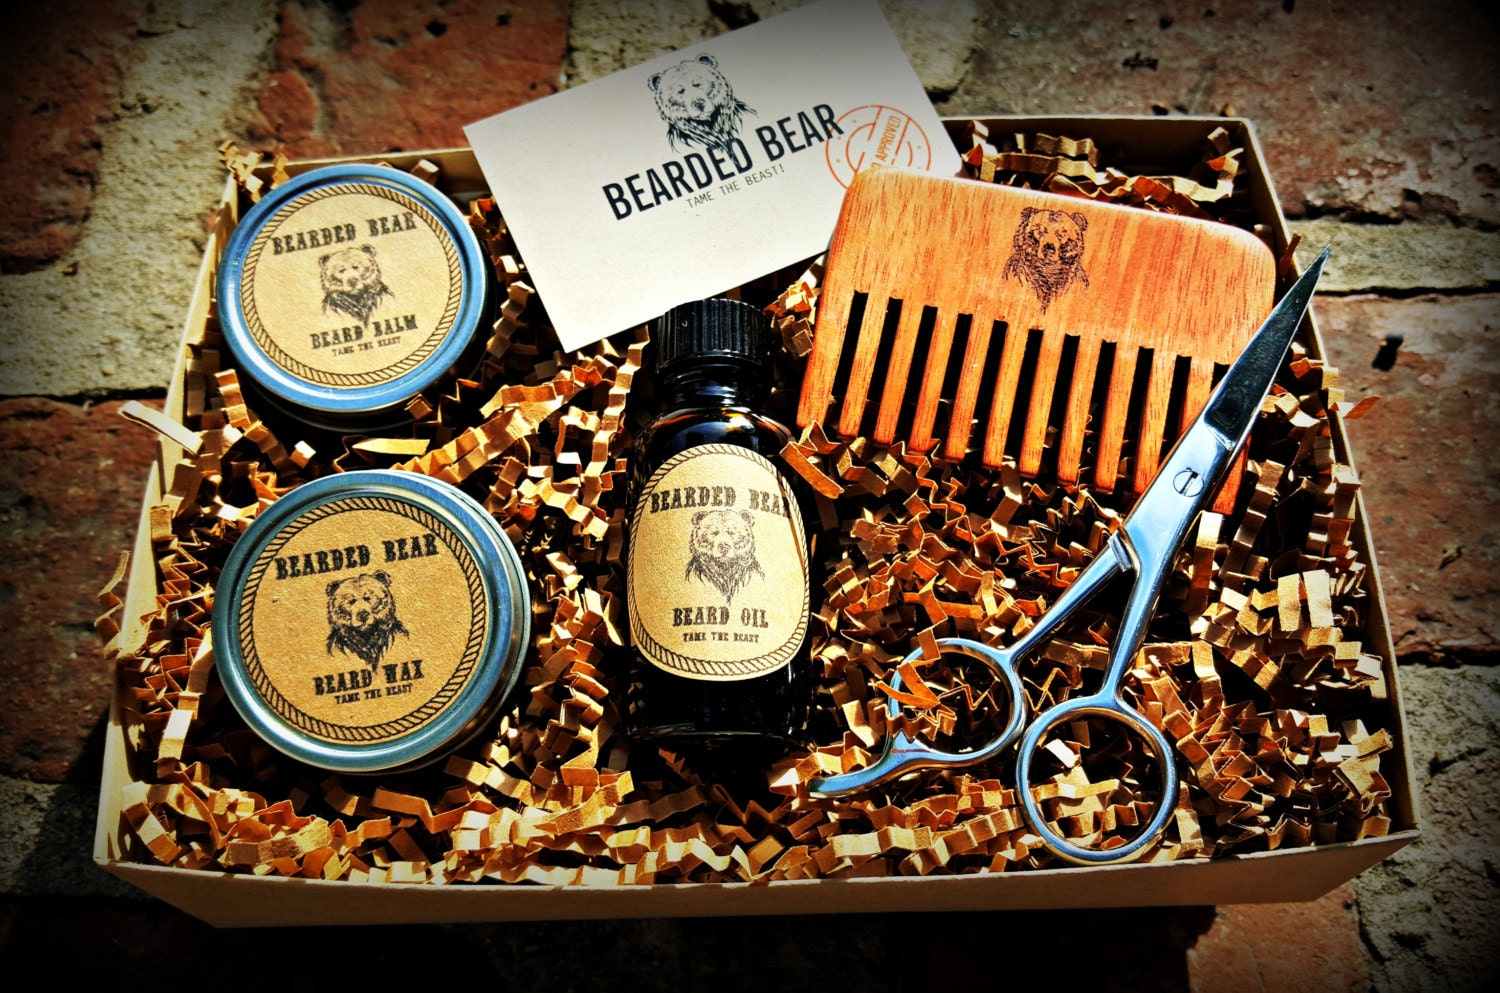 beard grooming kit oil wax balm wood comb scissors all. Black Bedroom Furniture Sets. Home Design Ideas